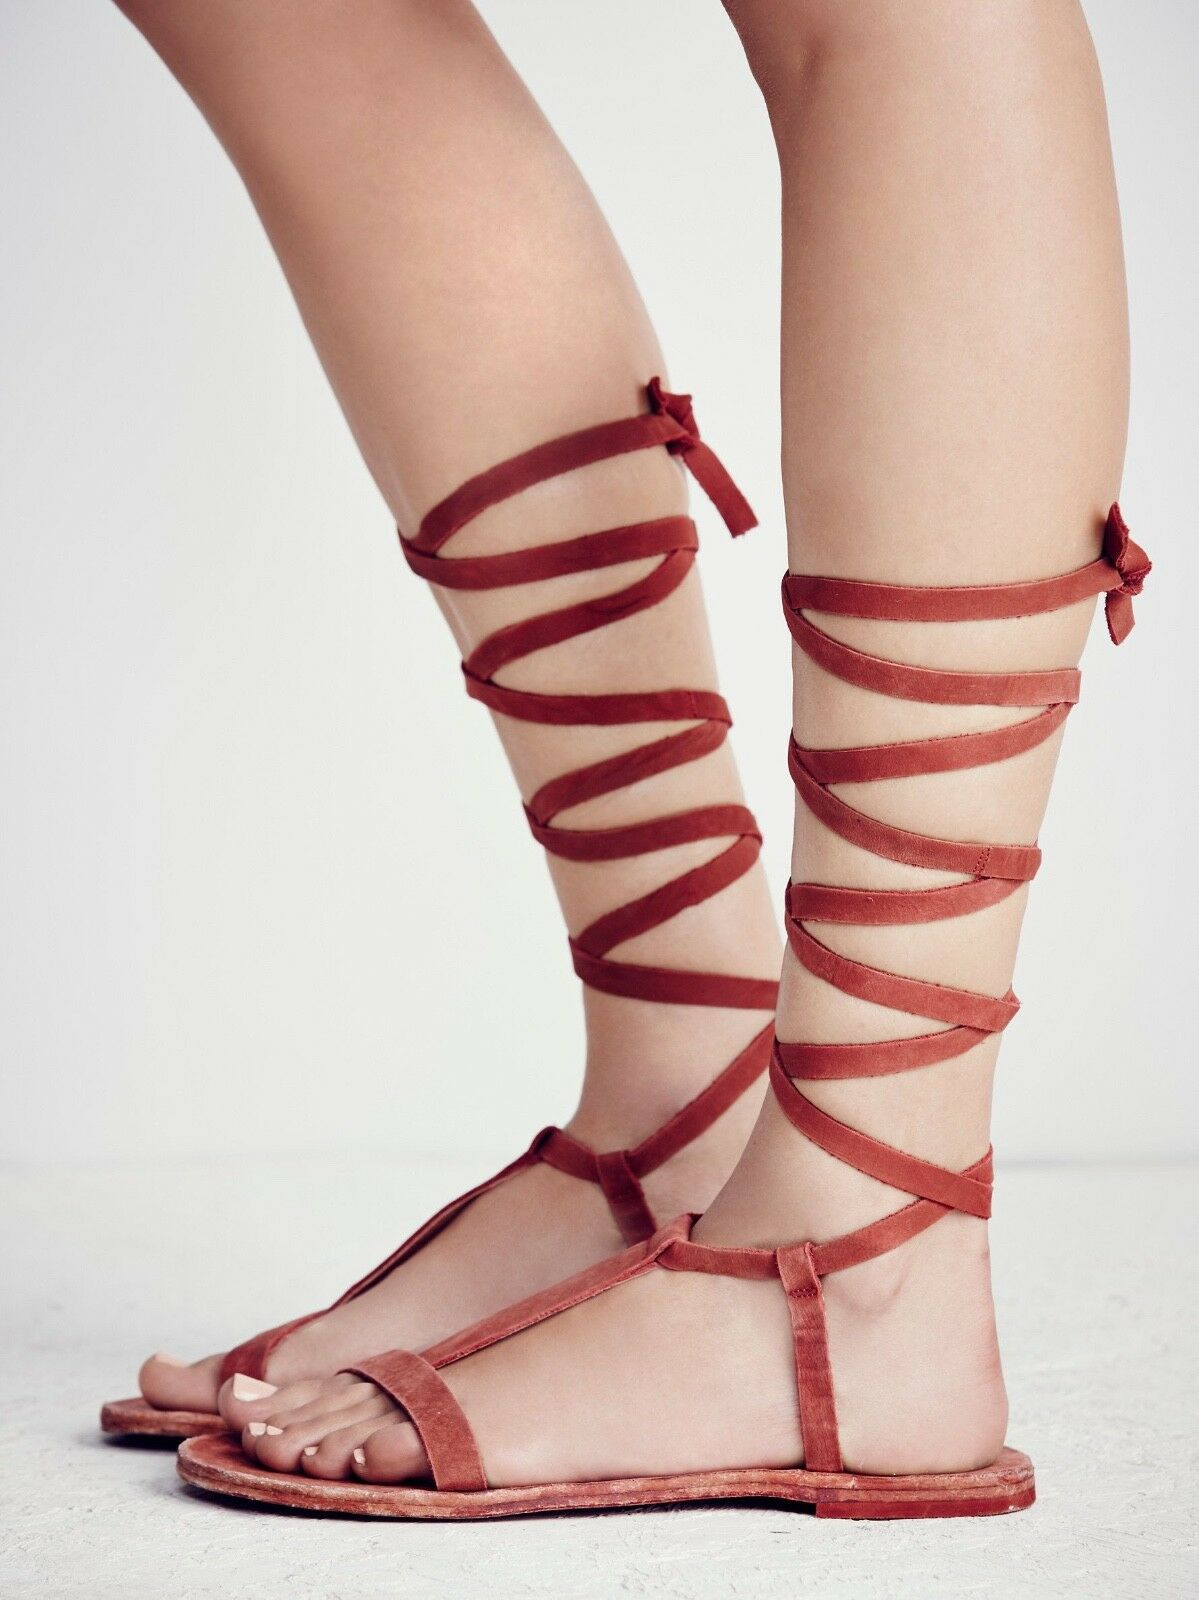 FREE PEOPLE TERRA COTTA LEATHER DAHLIA LACE UP SANDALS  37  7